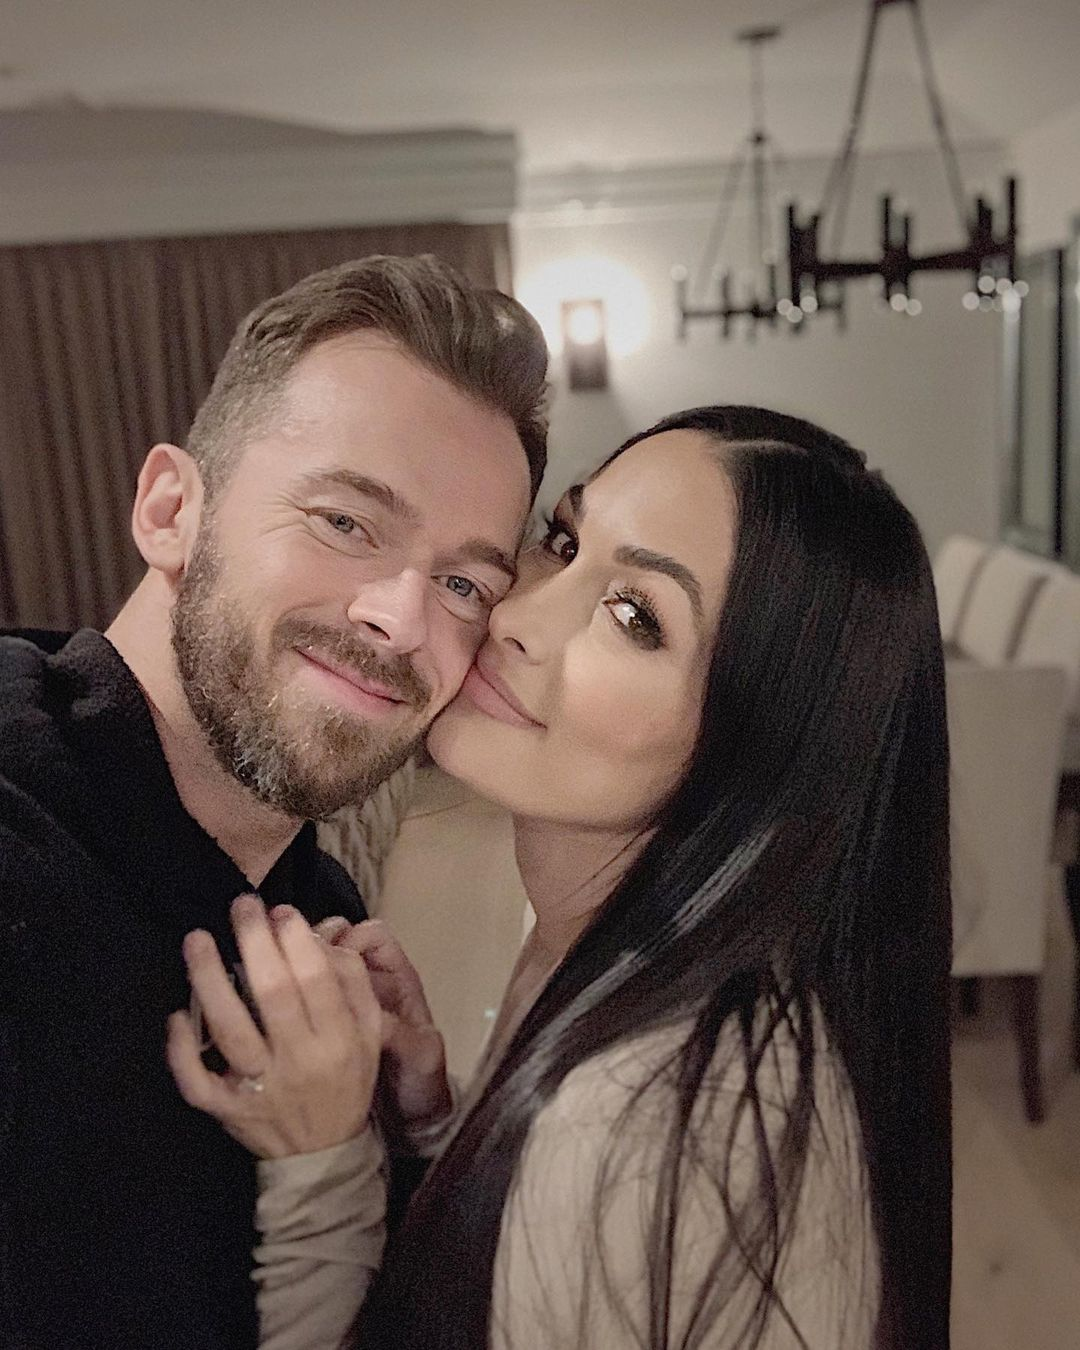 Actors Gossips: Heres why Nikki Bella says she has been dreaming about her ex-boyfriends including John Cena